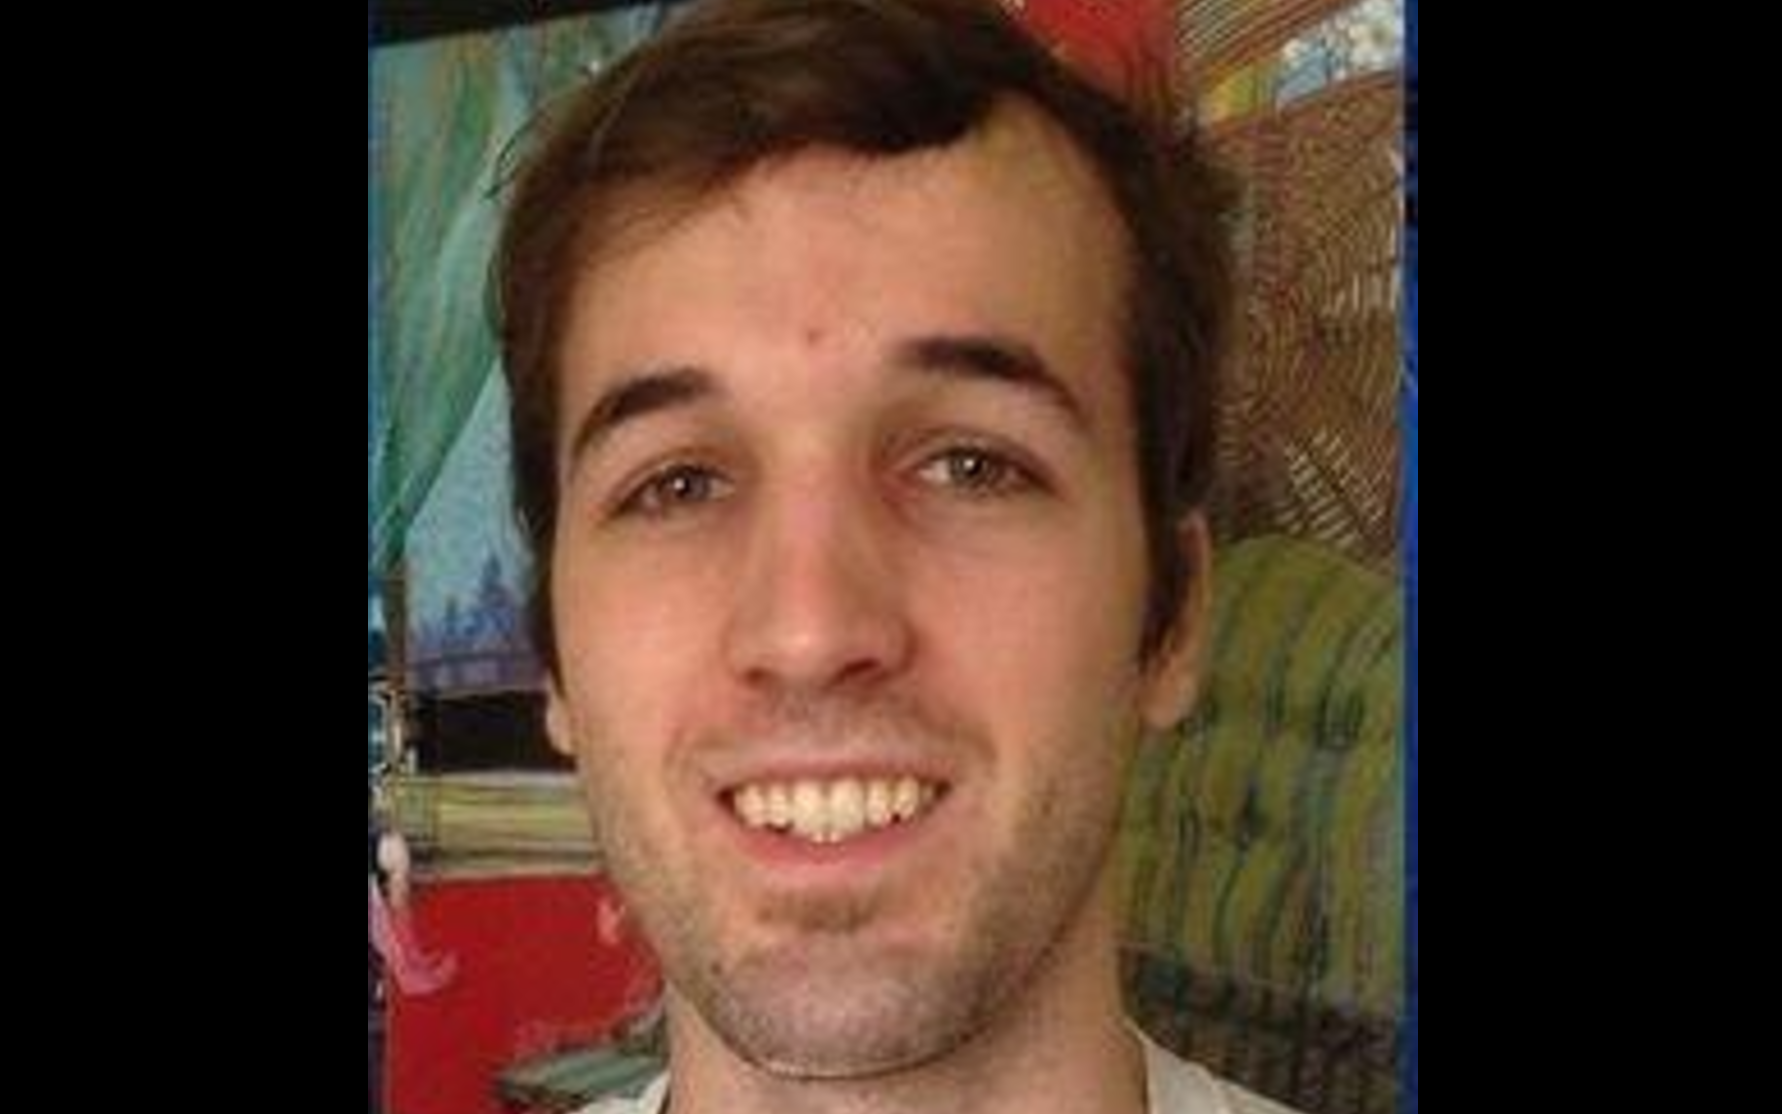 Officials searching for missing 26-year-old man from Watertown